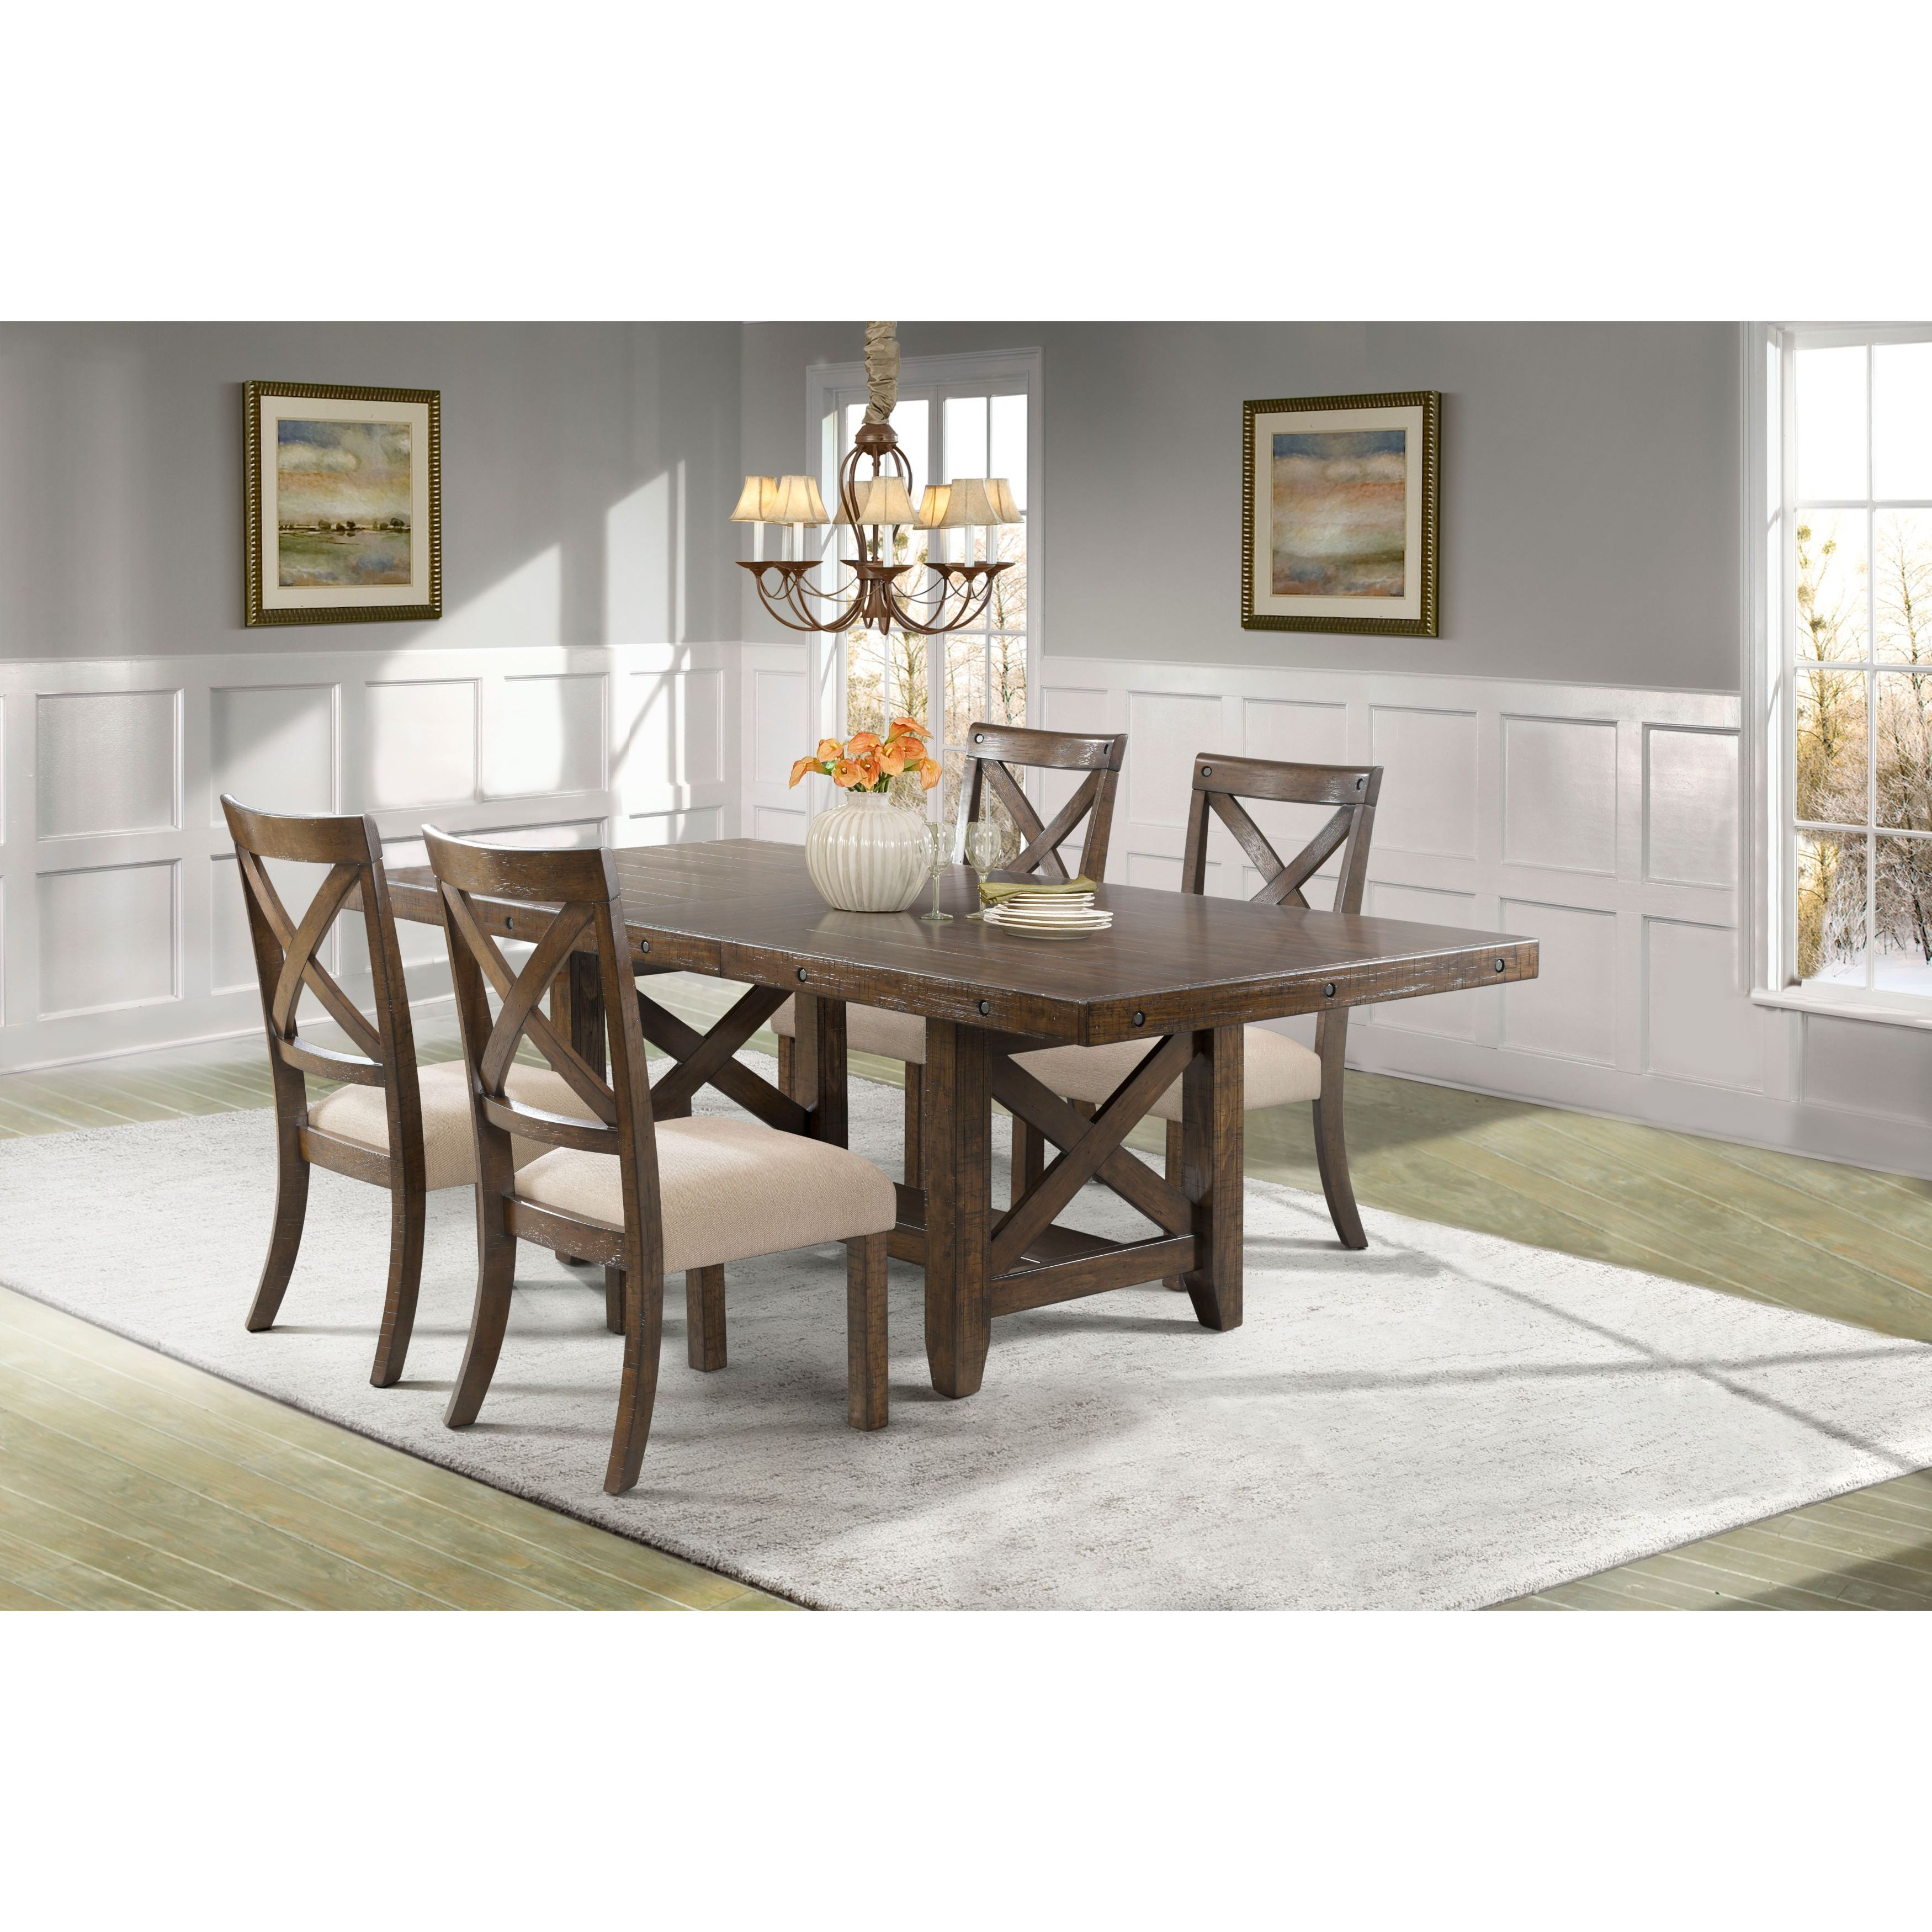 Buy 9-Piece Sets, Modern & Contemporary Kitchen & Dining Room Sets